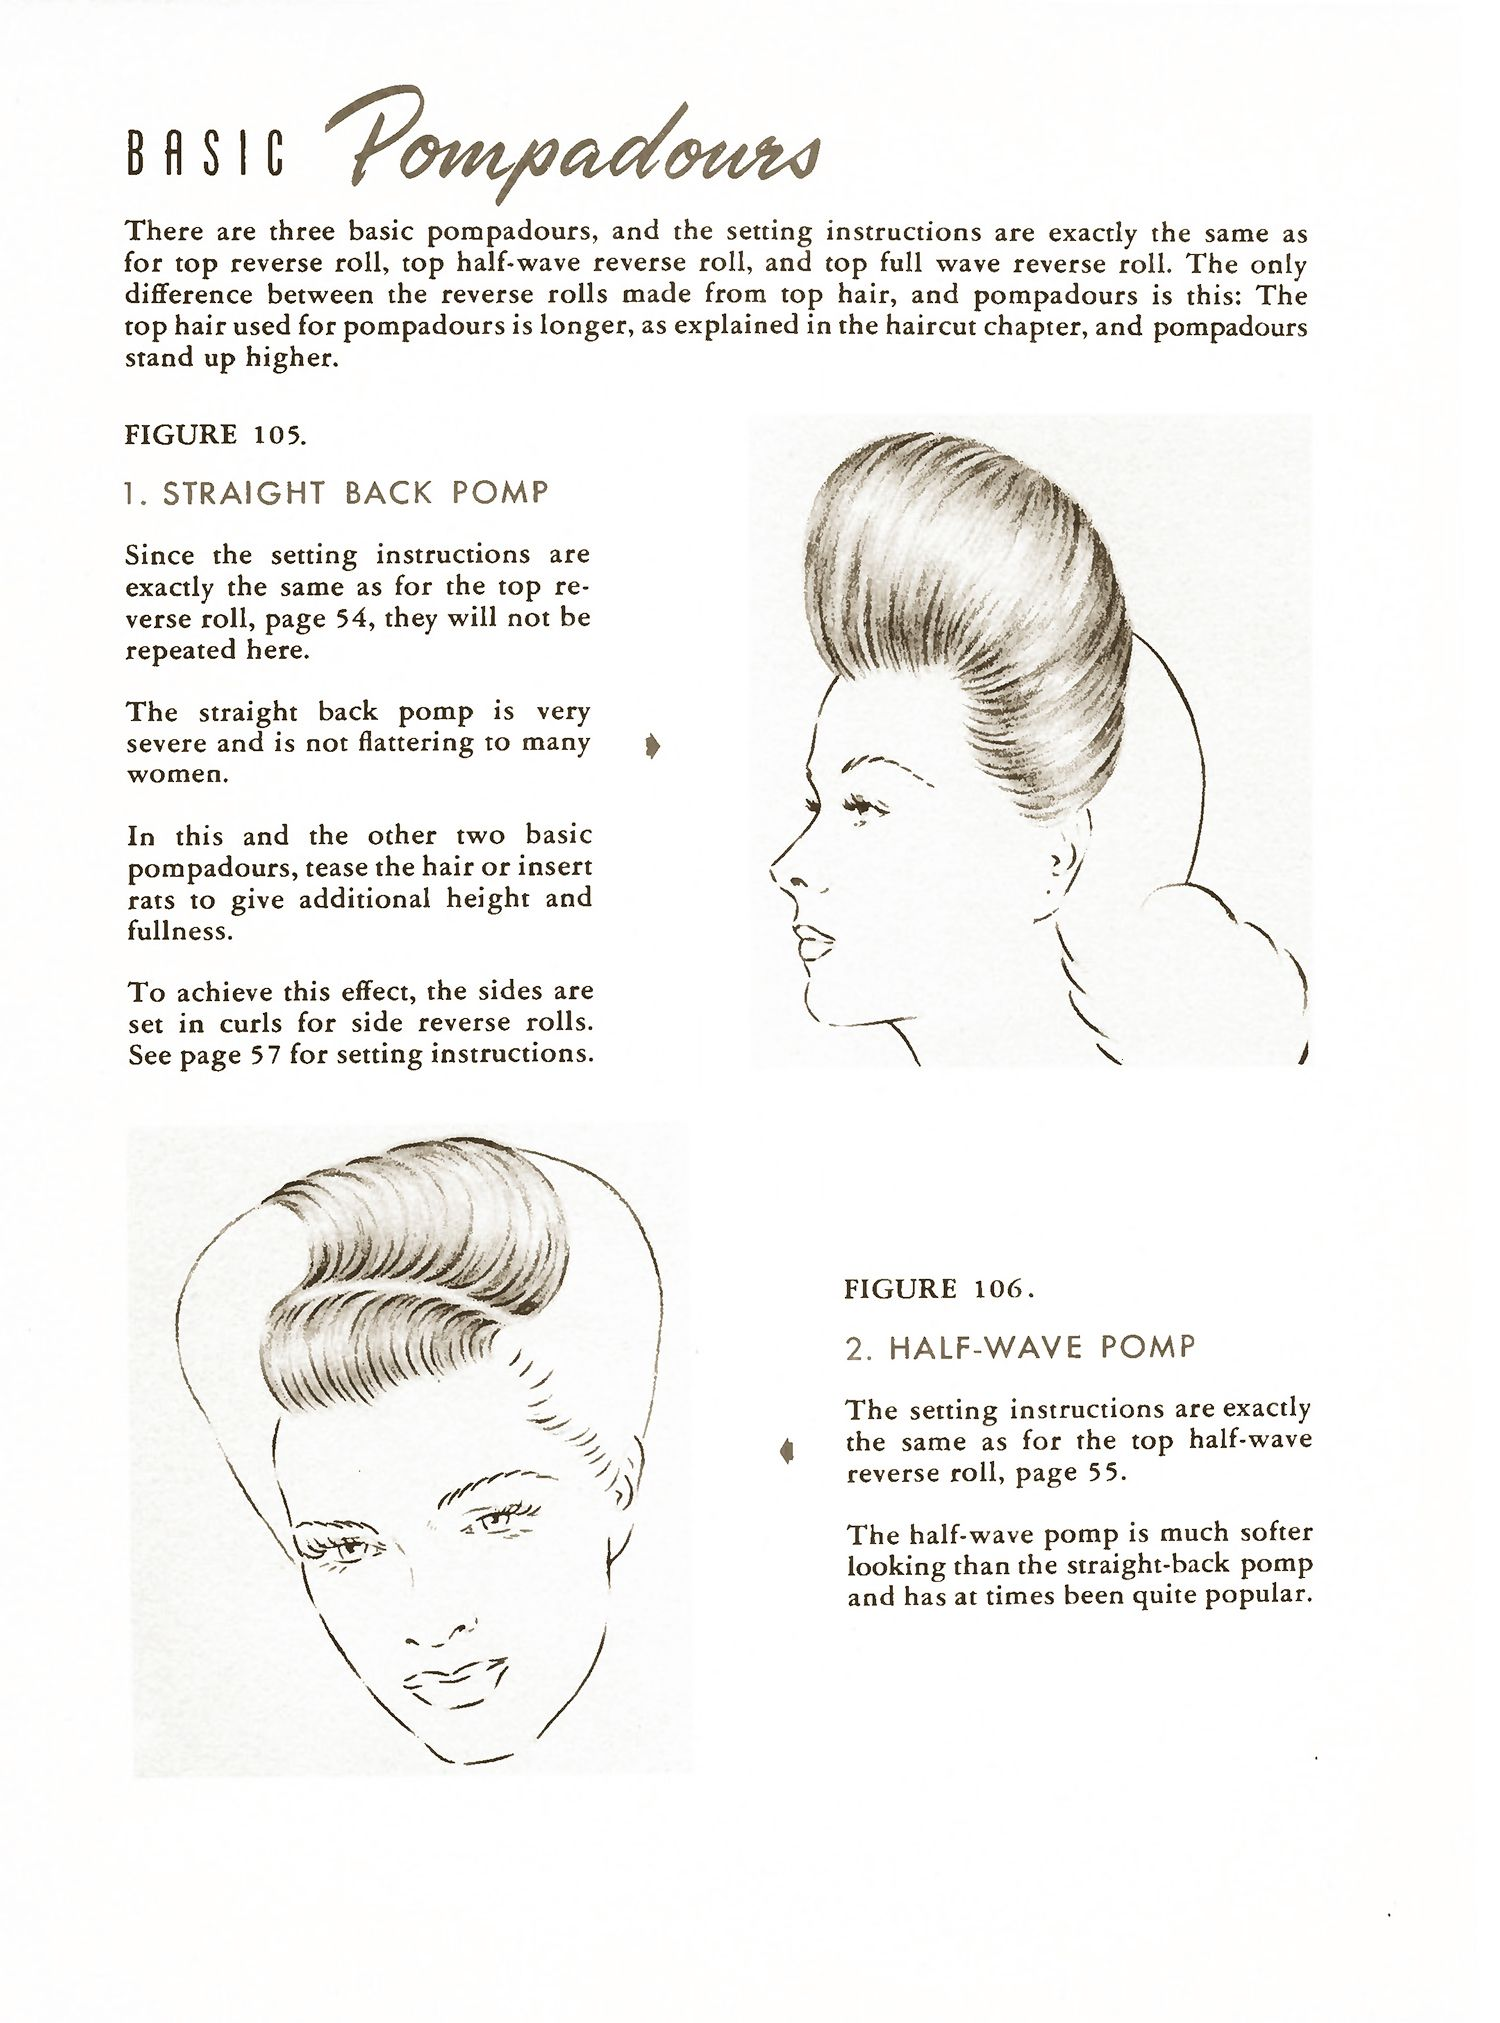 1940s Pompadour Hairstyle Howto Guide From 1944 Retro Hairstyles Vintage Hairstyles 1940s Hairstyles